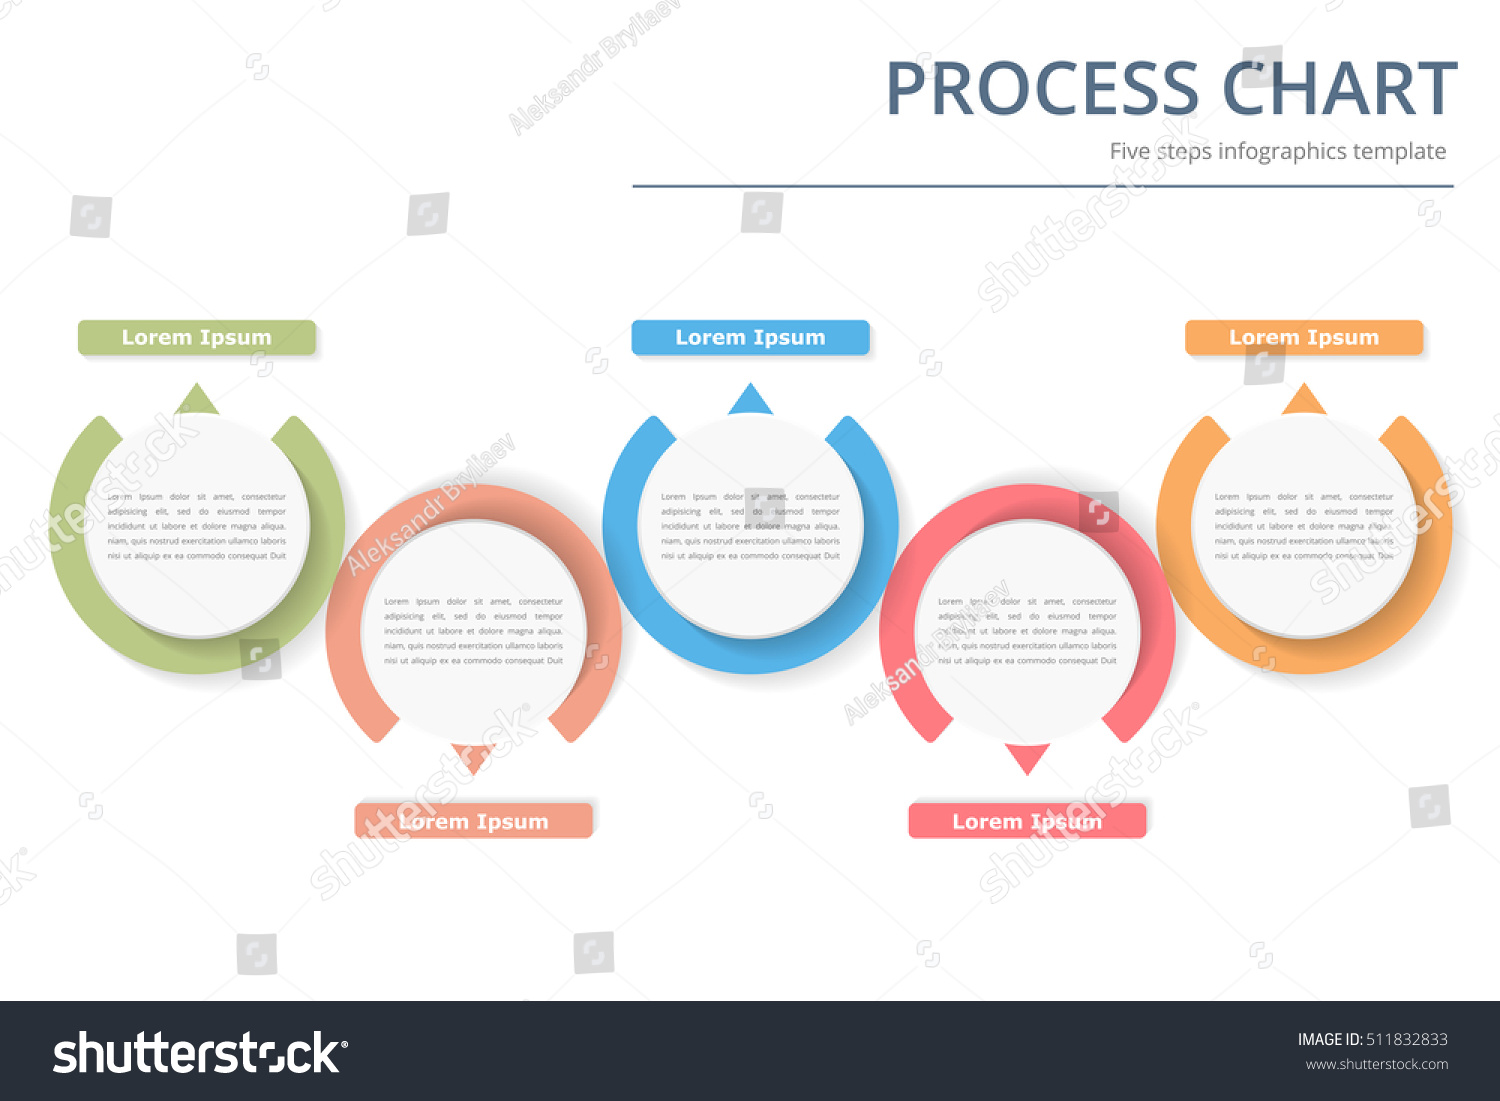 process diagram template circles flowchart workflow stock vector 511832833 shutterstock. Black Bedroom Furniture Sets. Home Design Ideas